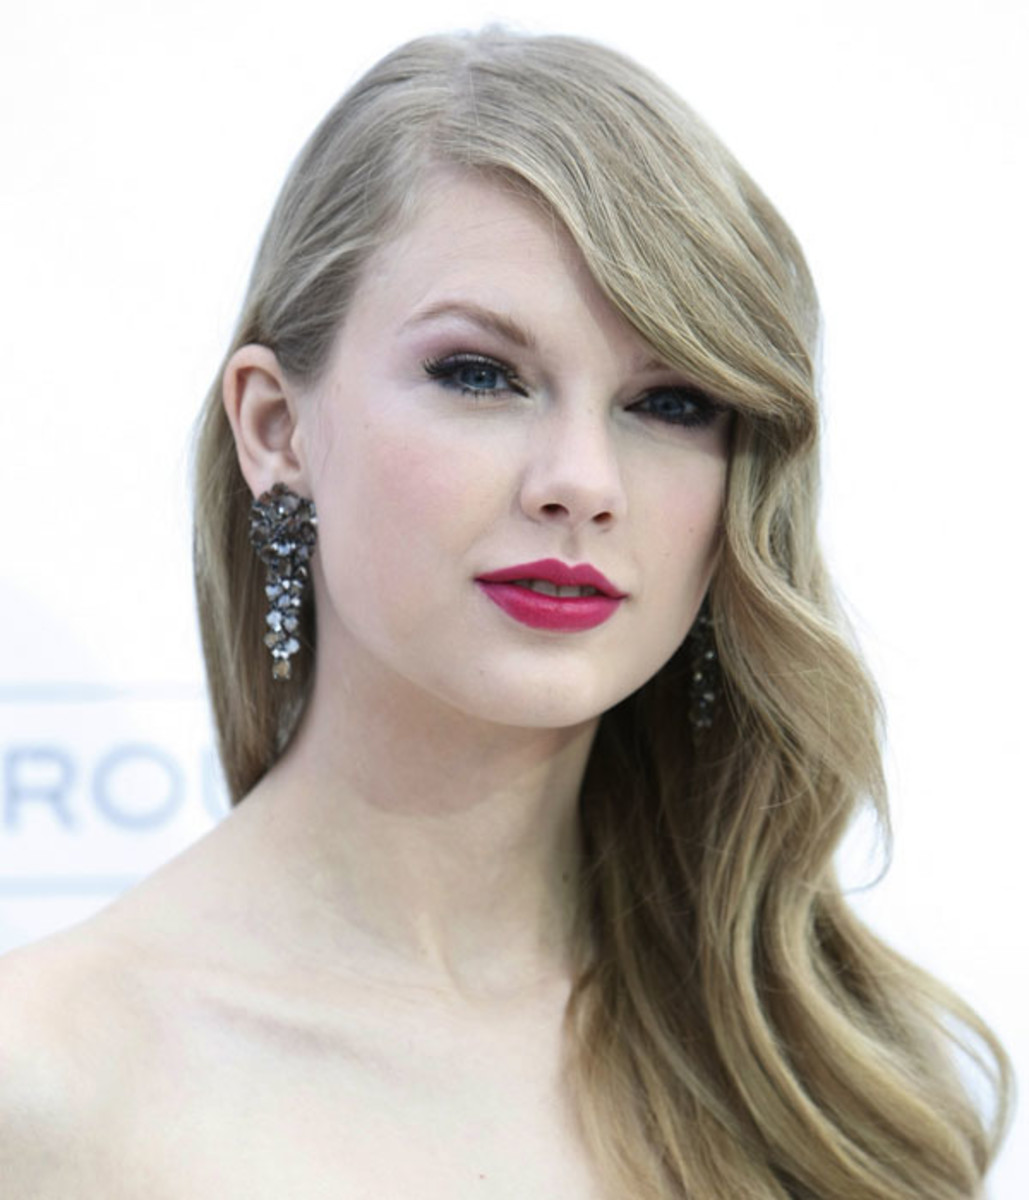 Taylor-Swift-Billboard-Music-Awards-2011